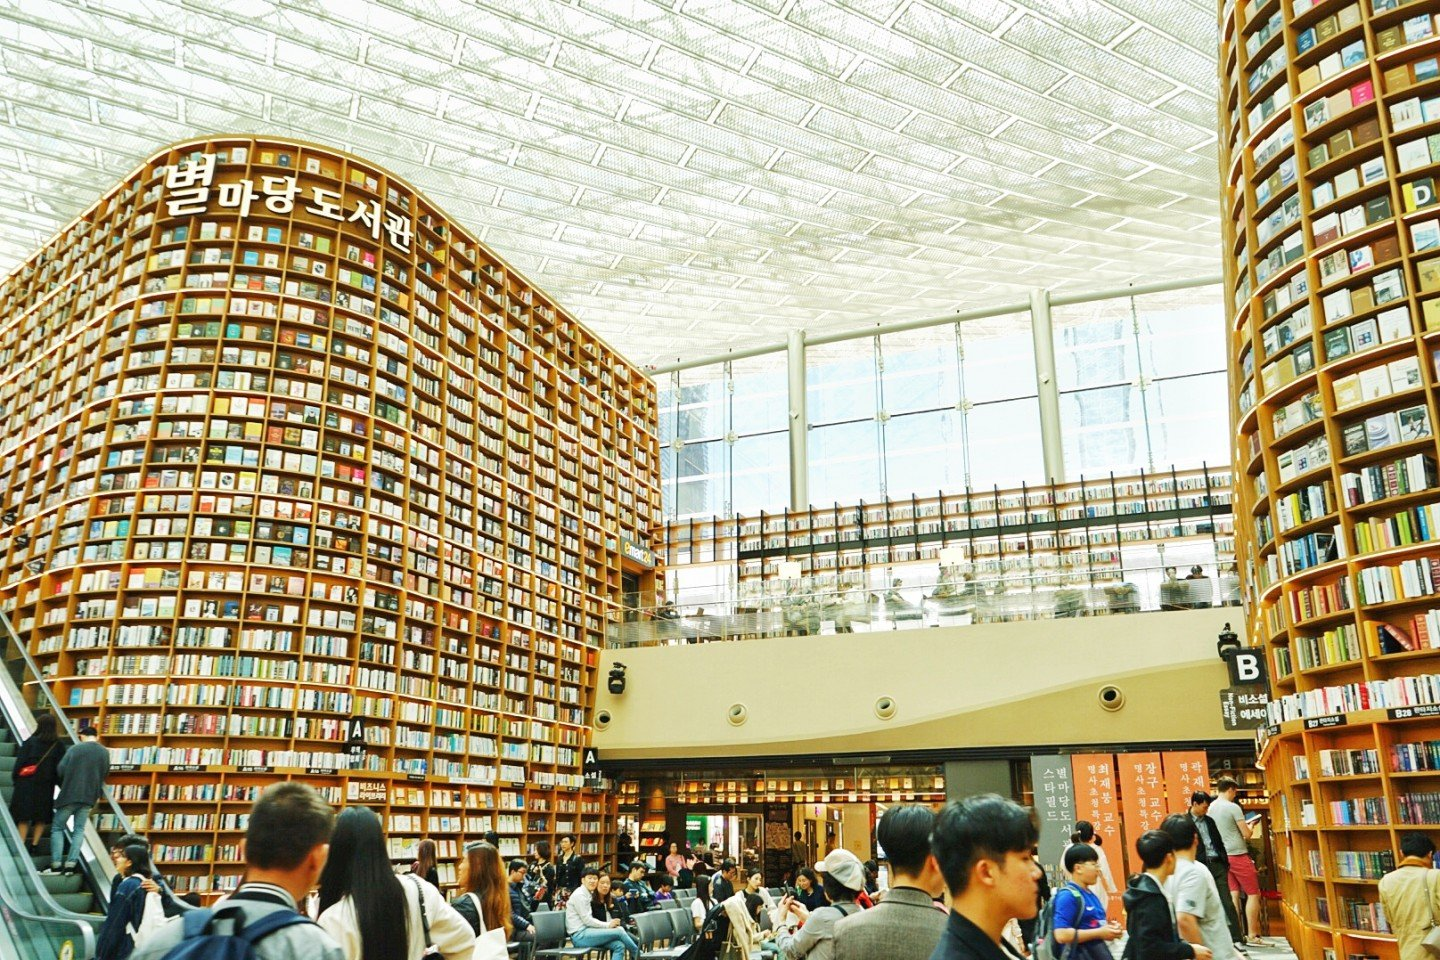 Starfield Library 星光庭院圖書館